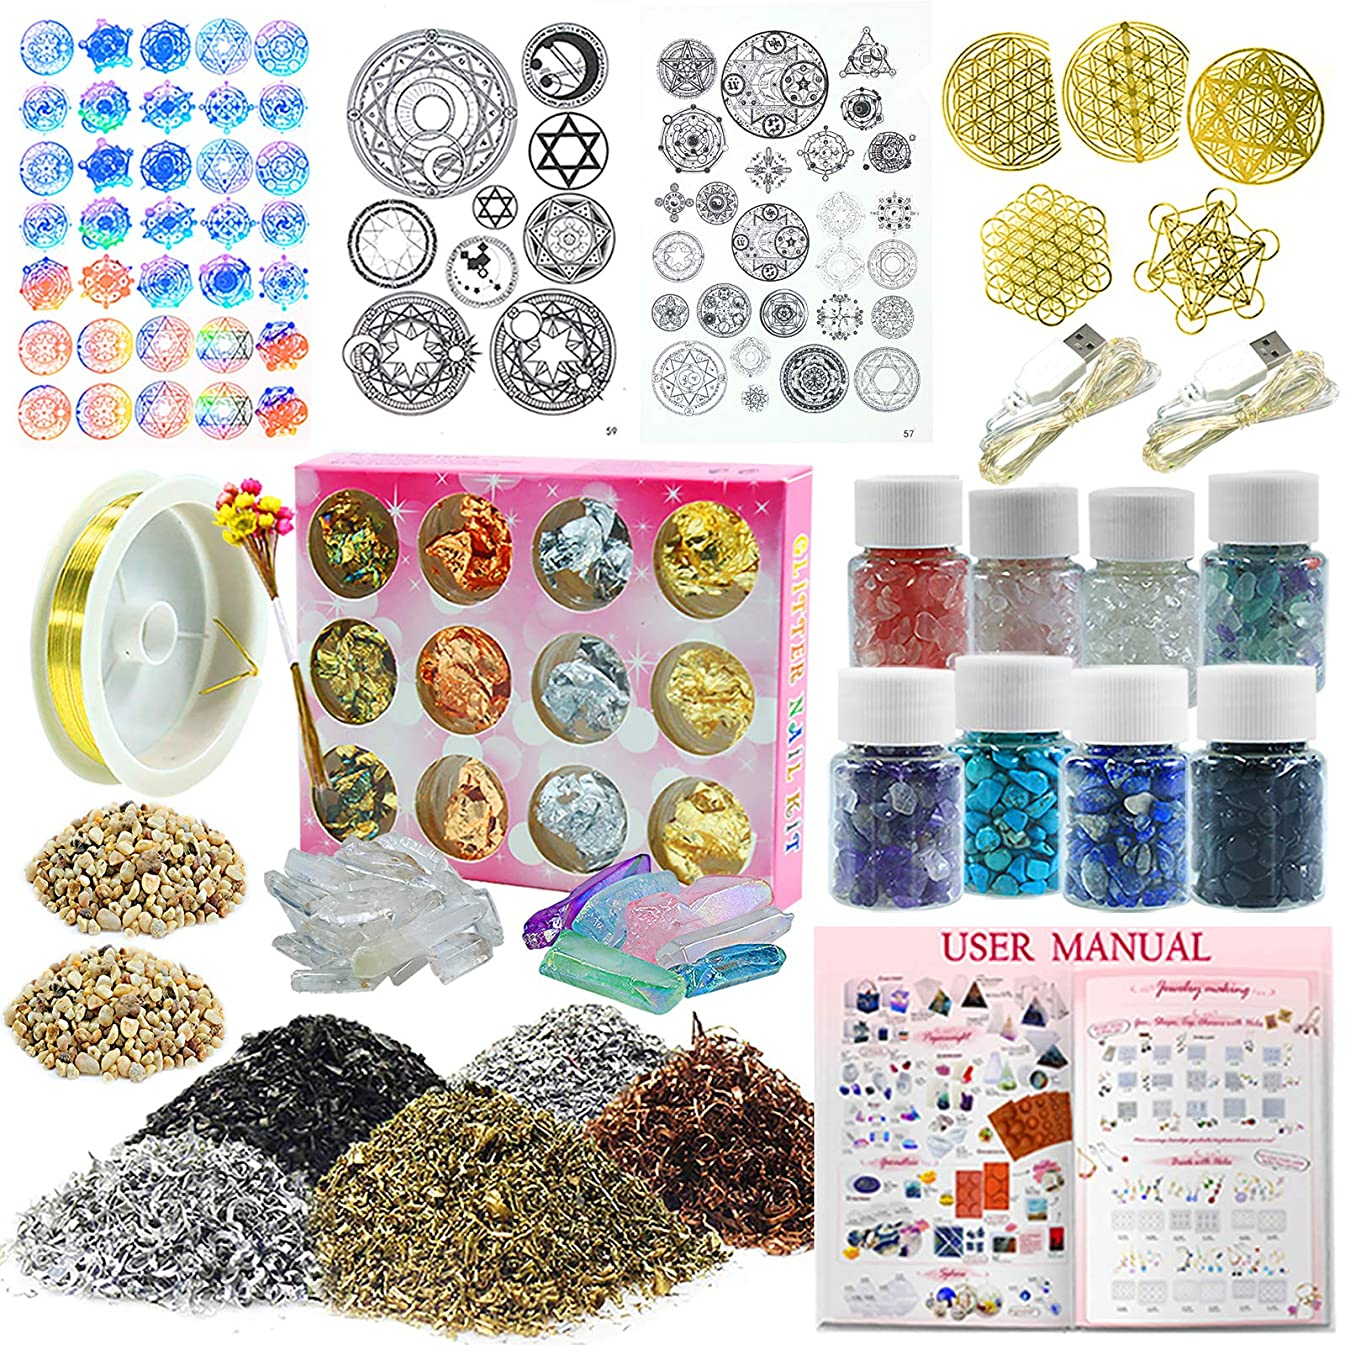 Funshowcase Resin Art Pyramid Making Supplies Pack of 36 Kits Energy Generator Symbol, Mineral Stone, Metal, Wires, Filler, LED and More